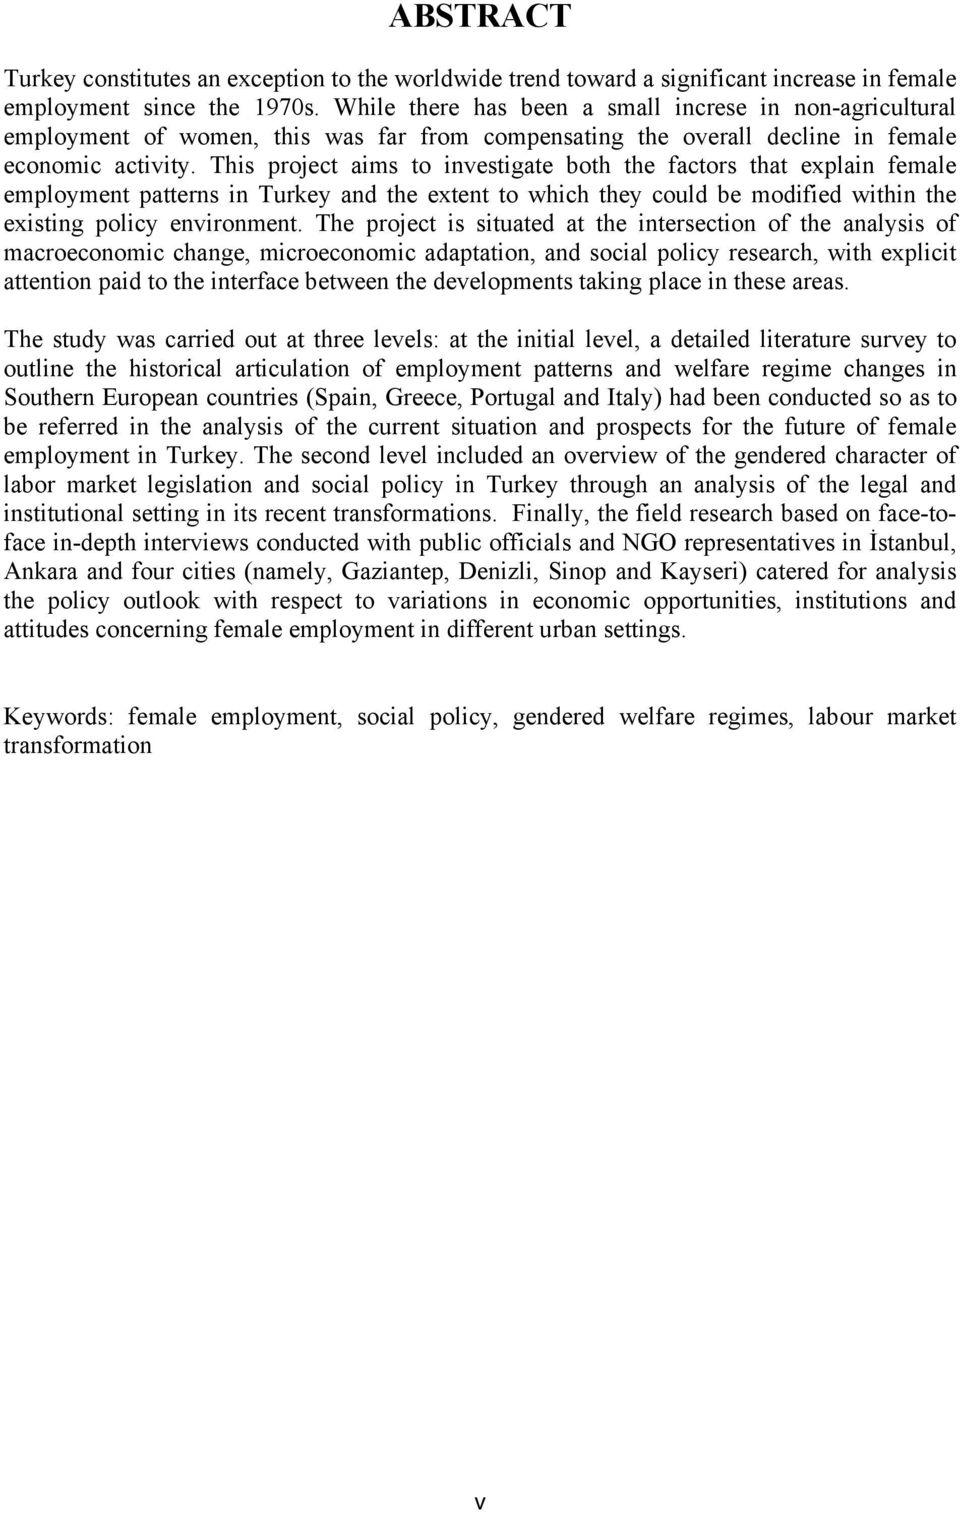 This project aims to investigate both the factors that explain female employment patterns in Turkey and the extent to which they could be modified within the existing policy environment.